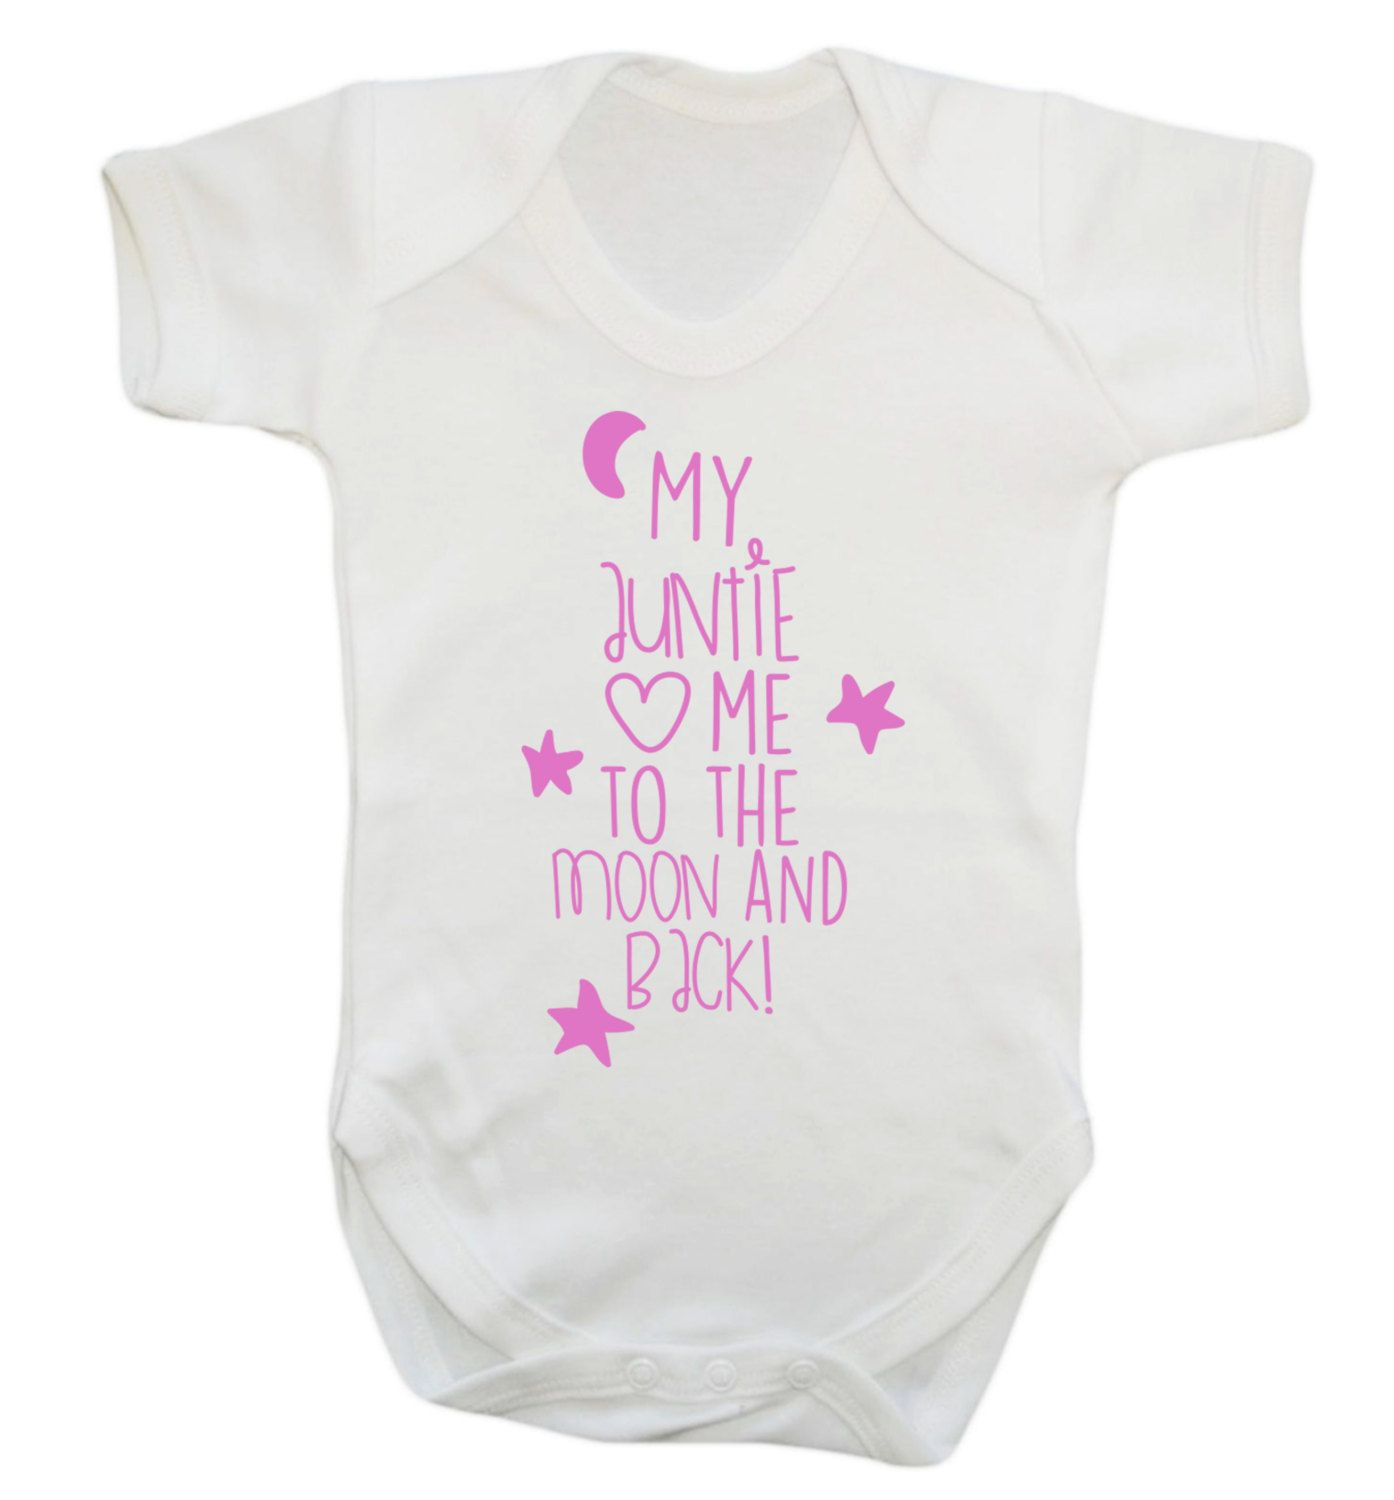 MY AUNTY LOVES ME TO THE MOON AND BACK PERSONALISED BABY GROW BODY SUIT VEST